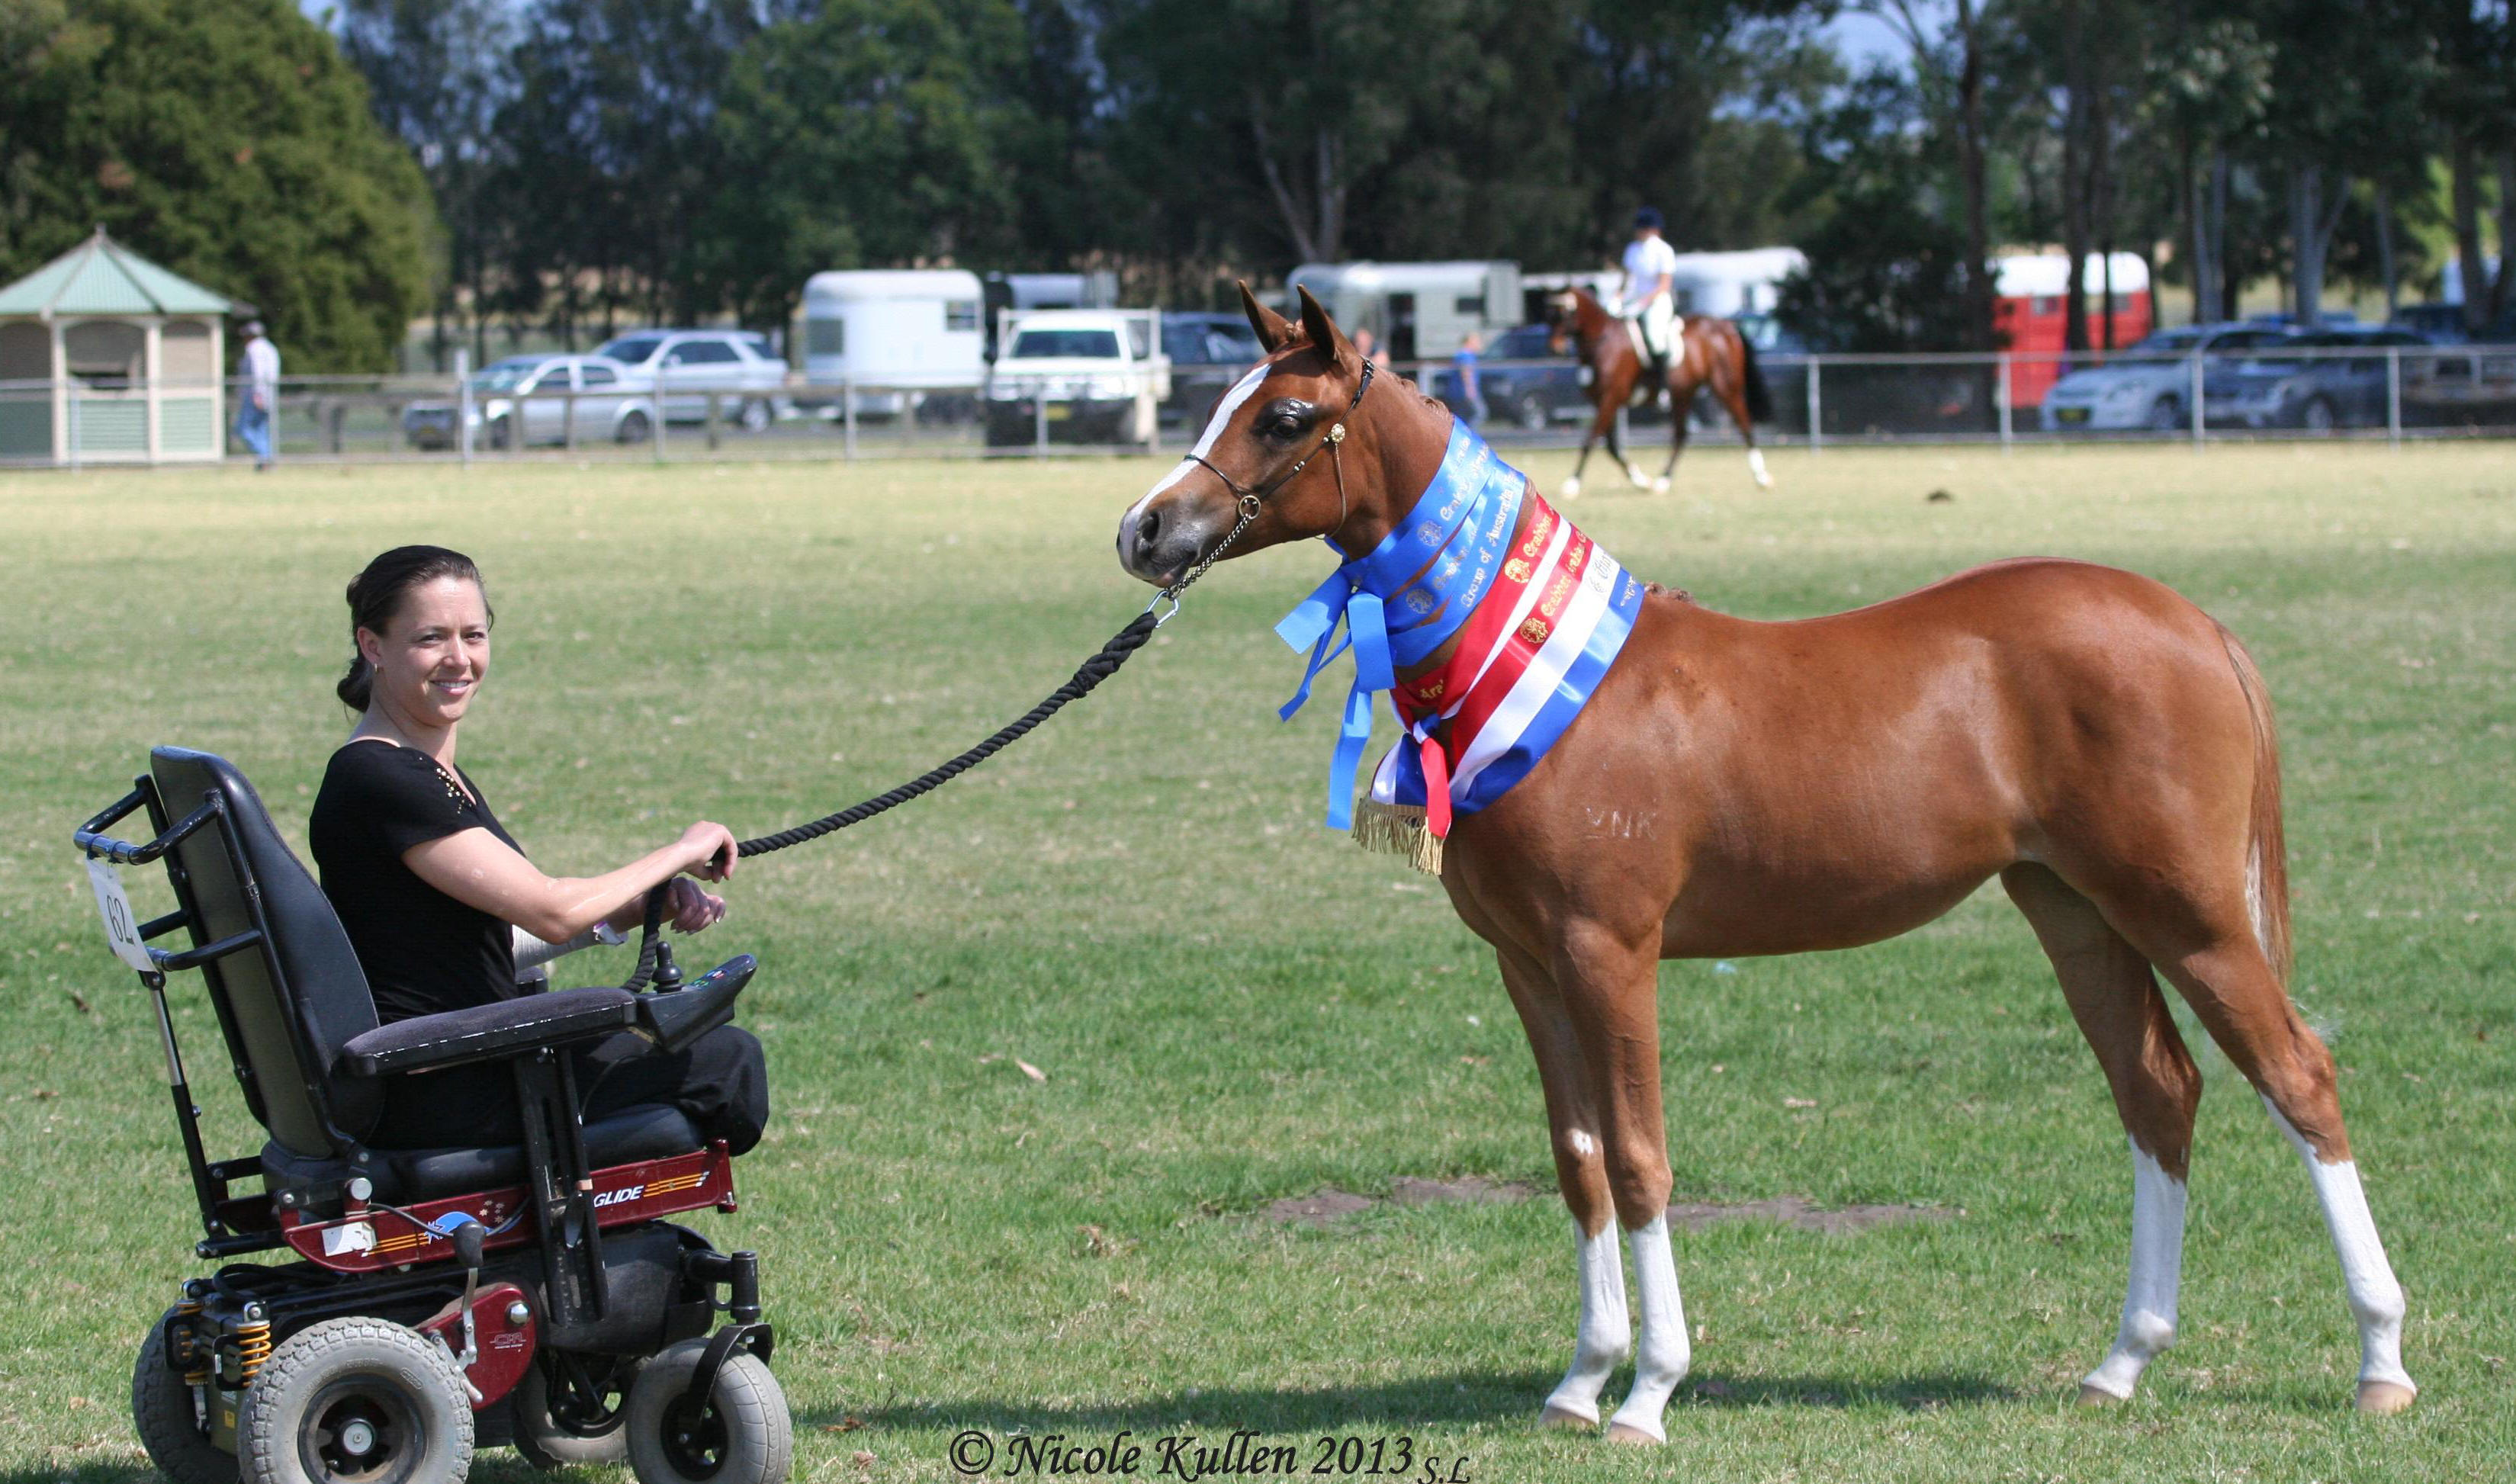 Arabian Pony, Part Welsh filly NIKSHAR VALENTINAH ROSE (Nikshar Valentino x B. Country Rose) shown by Nicole Kullen successfully from her electric wheelchair.